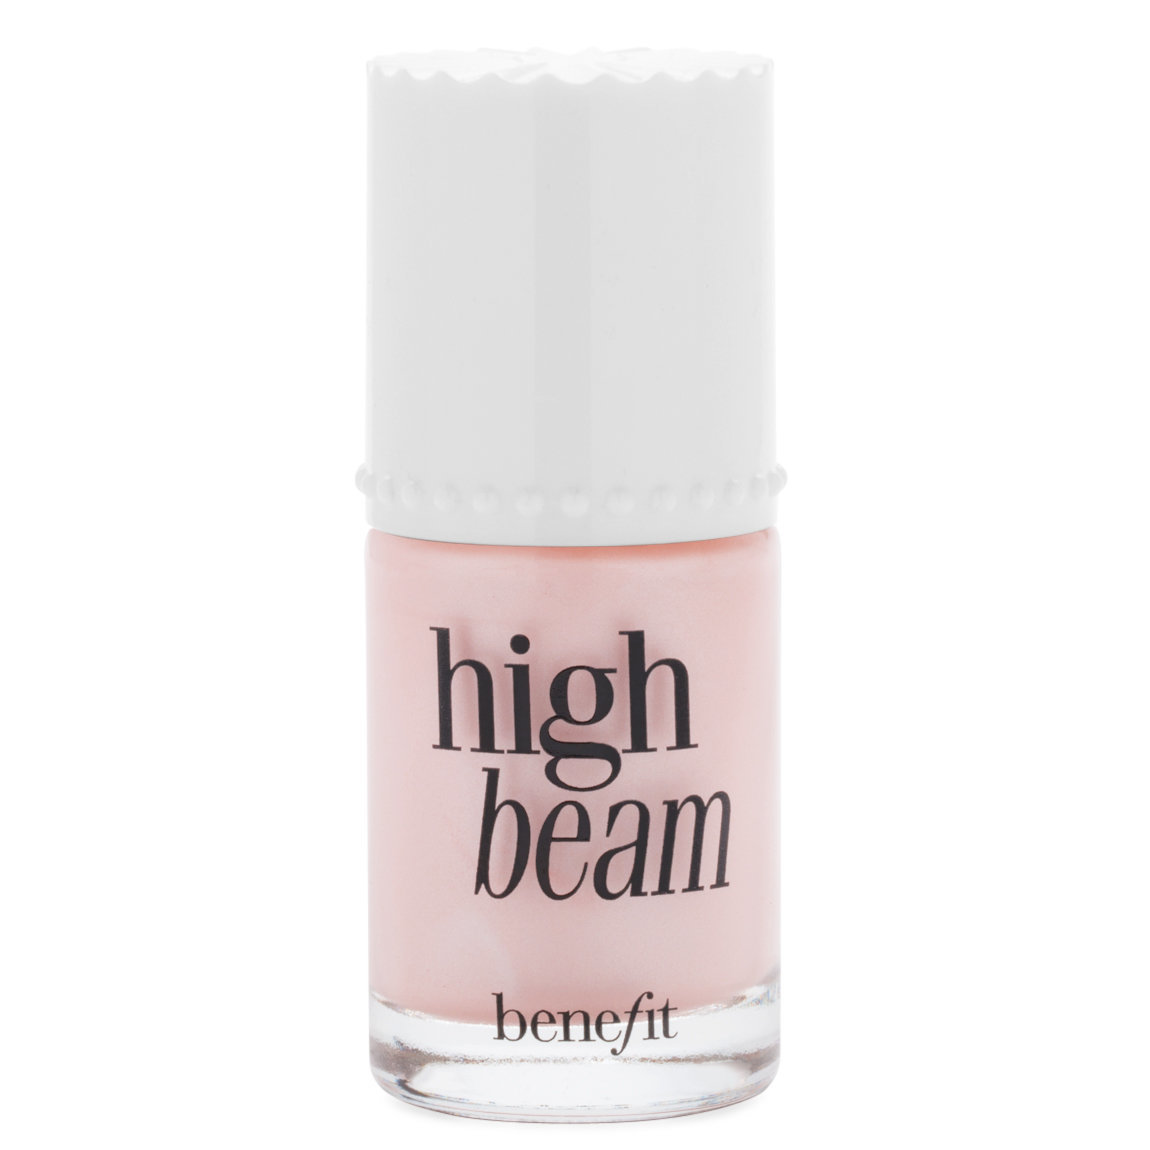 Benefit Cosmetics High Beam Liquid Highlighter product smear.